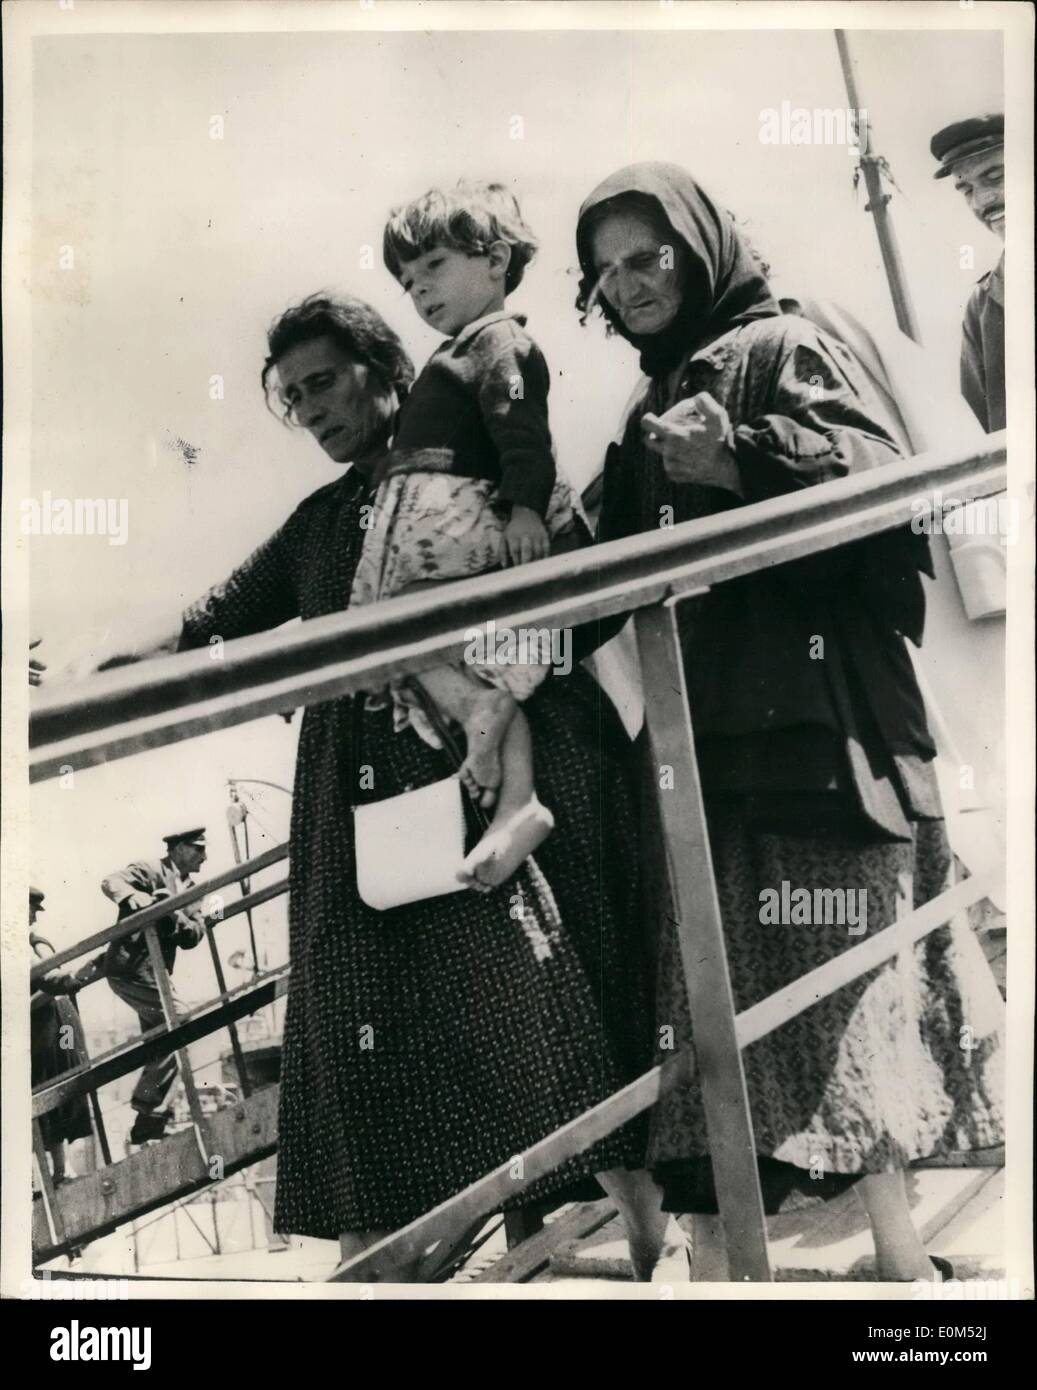 Aug. 08, 1953 - THE GREEK EARTHQUAKE DISASTER WHOLE TOWN SLIDE INTO SEA.; More tremors rocked the Greek islands in the Ionian Sea today as British warships arrived to help in rescue operations. A ''Dunkirk'' evacuation went into operation to the survivors to the mainland. Photo Shows Greeks mothers carrying their children on board special army transports ships which evacuated them to Piraeus from one of the stricken Ionian islands. - Stock Image